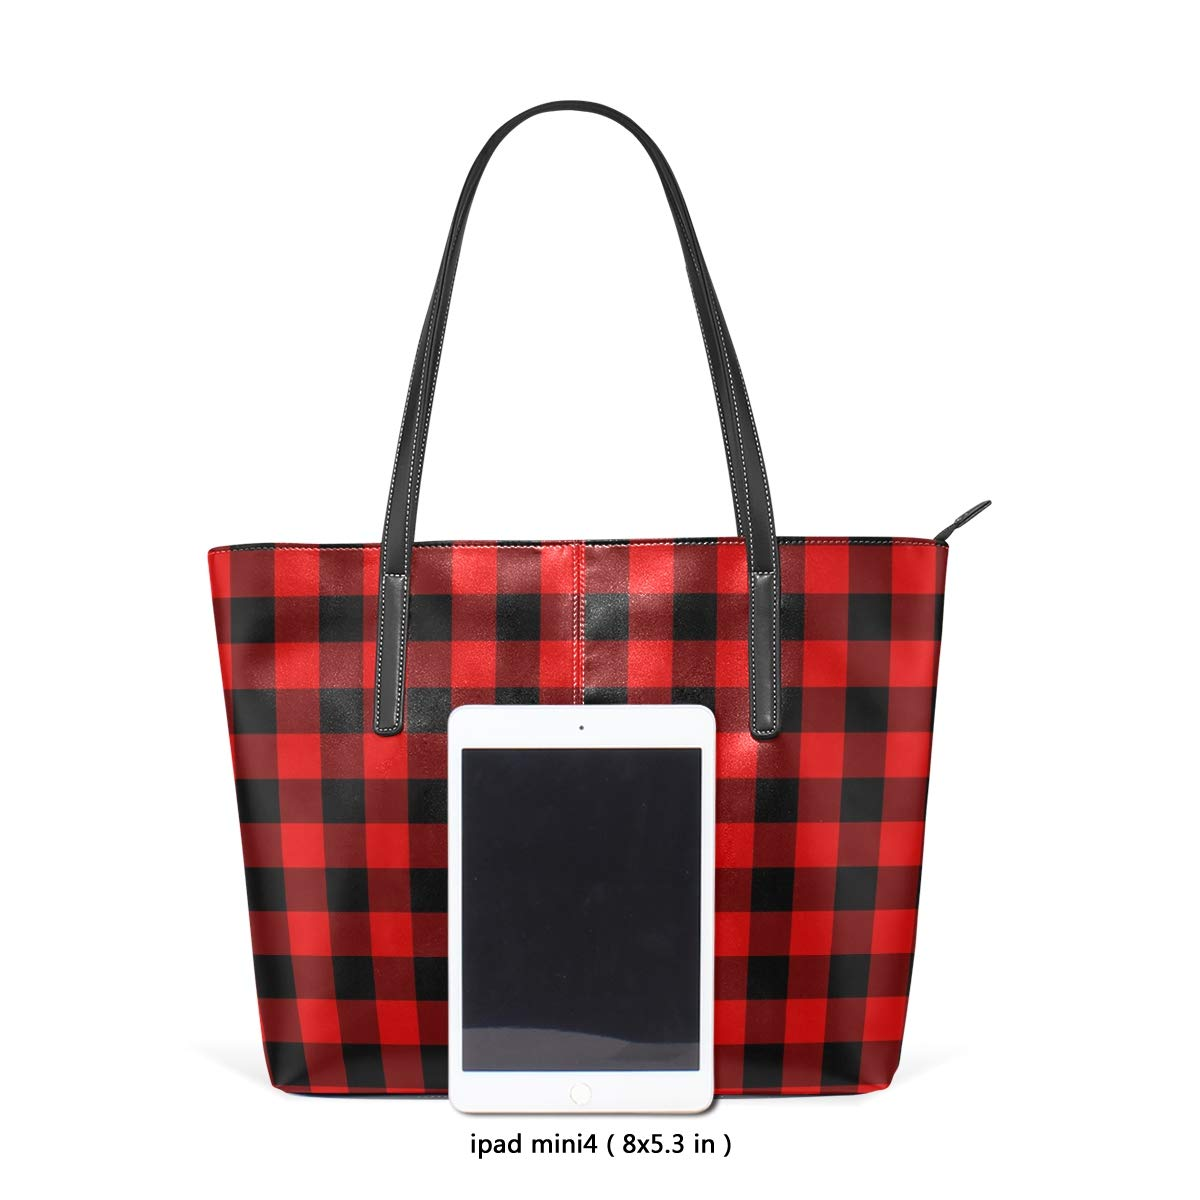 c961fa13726c Women PU Leather Tote Black Red Buffalo Plaid Shoulder Bag  Handbags  Amazon .com